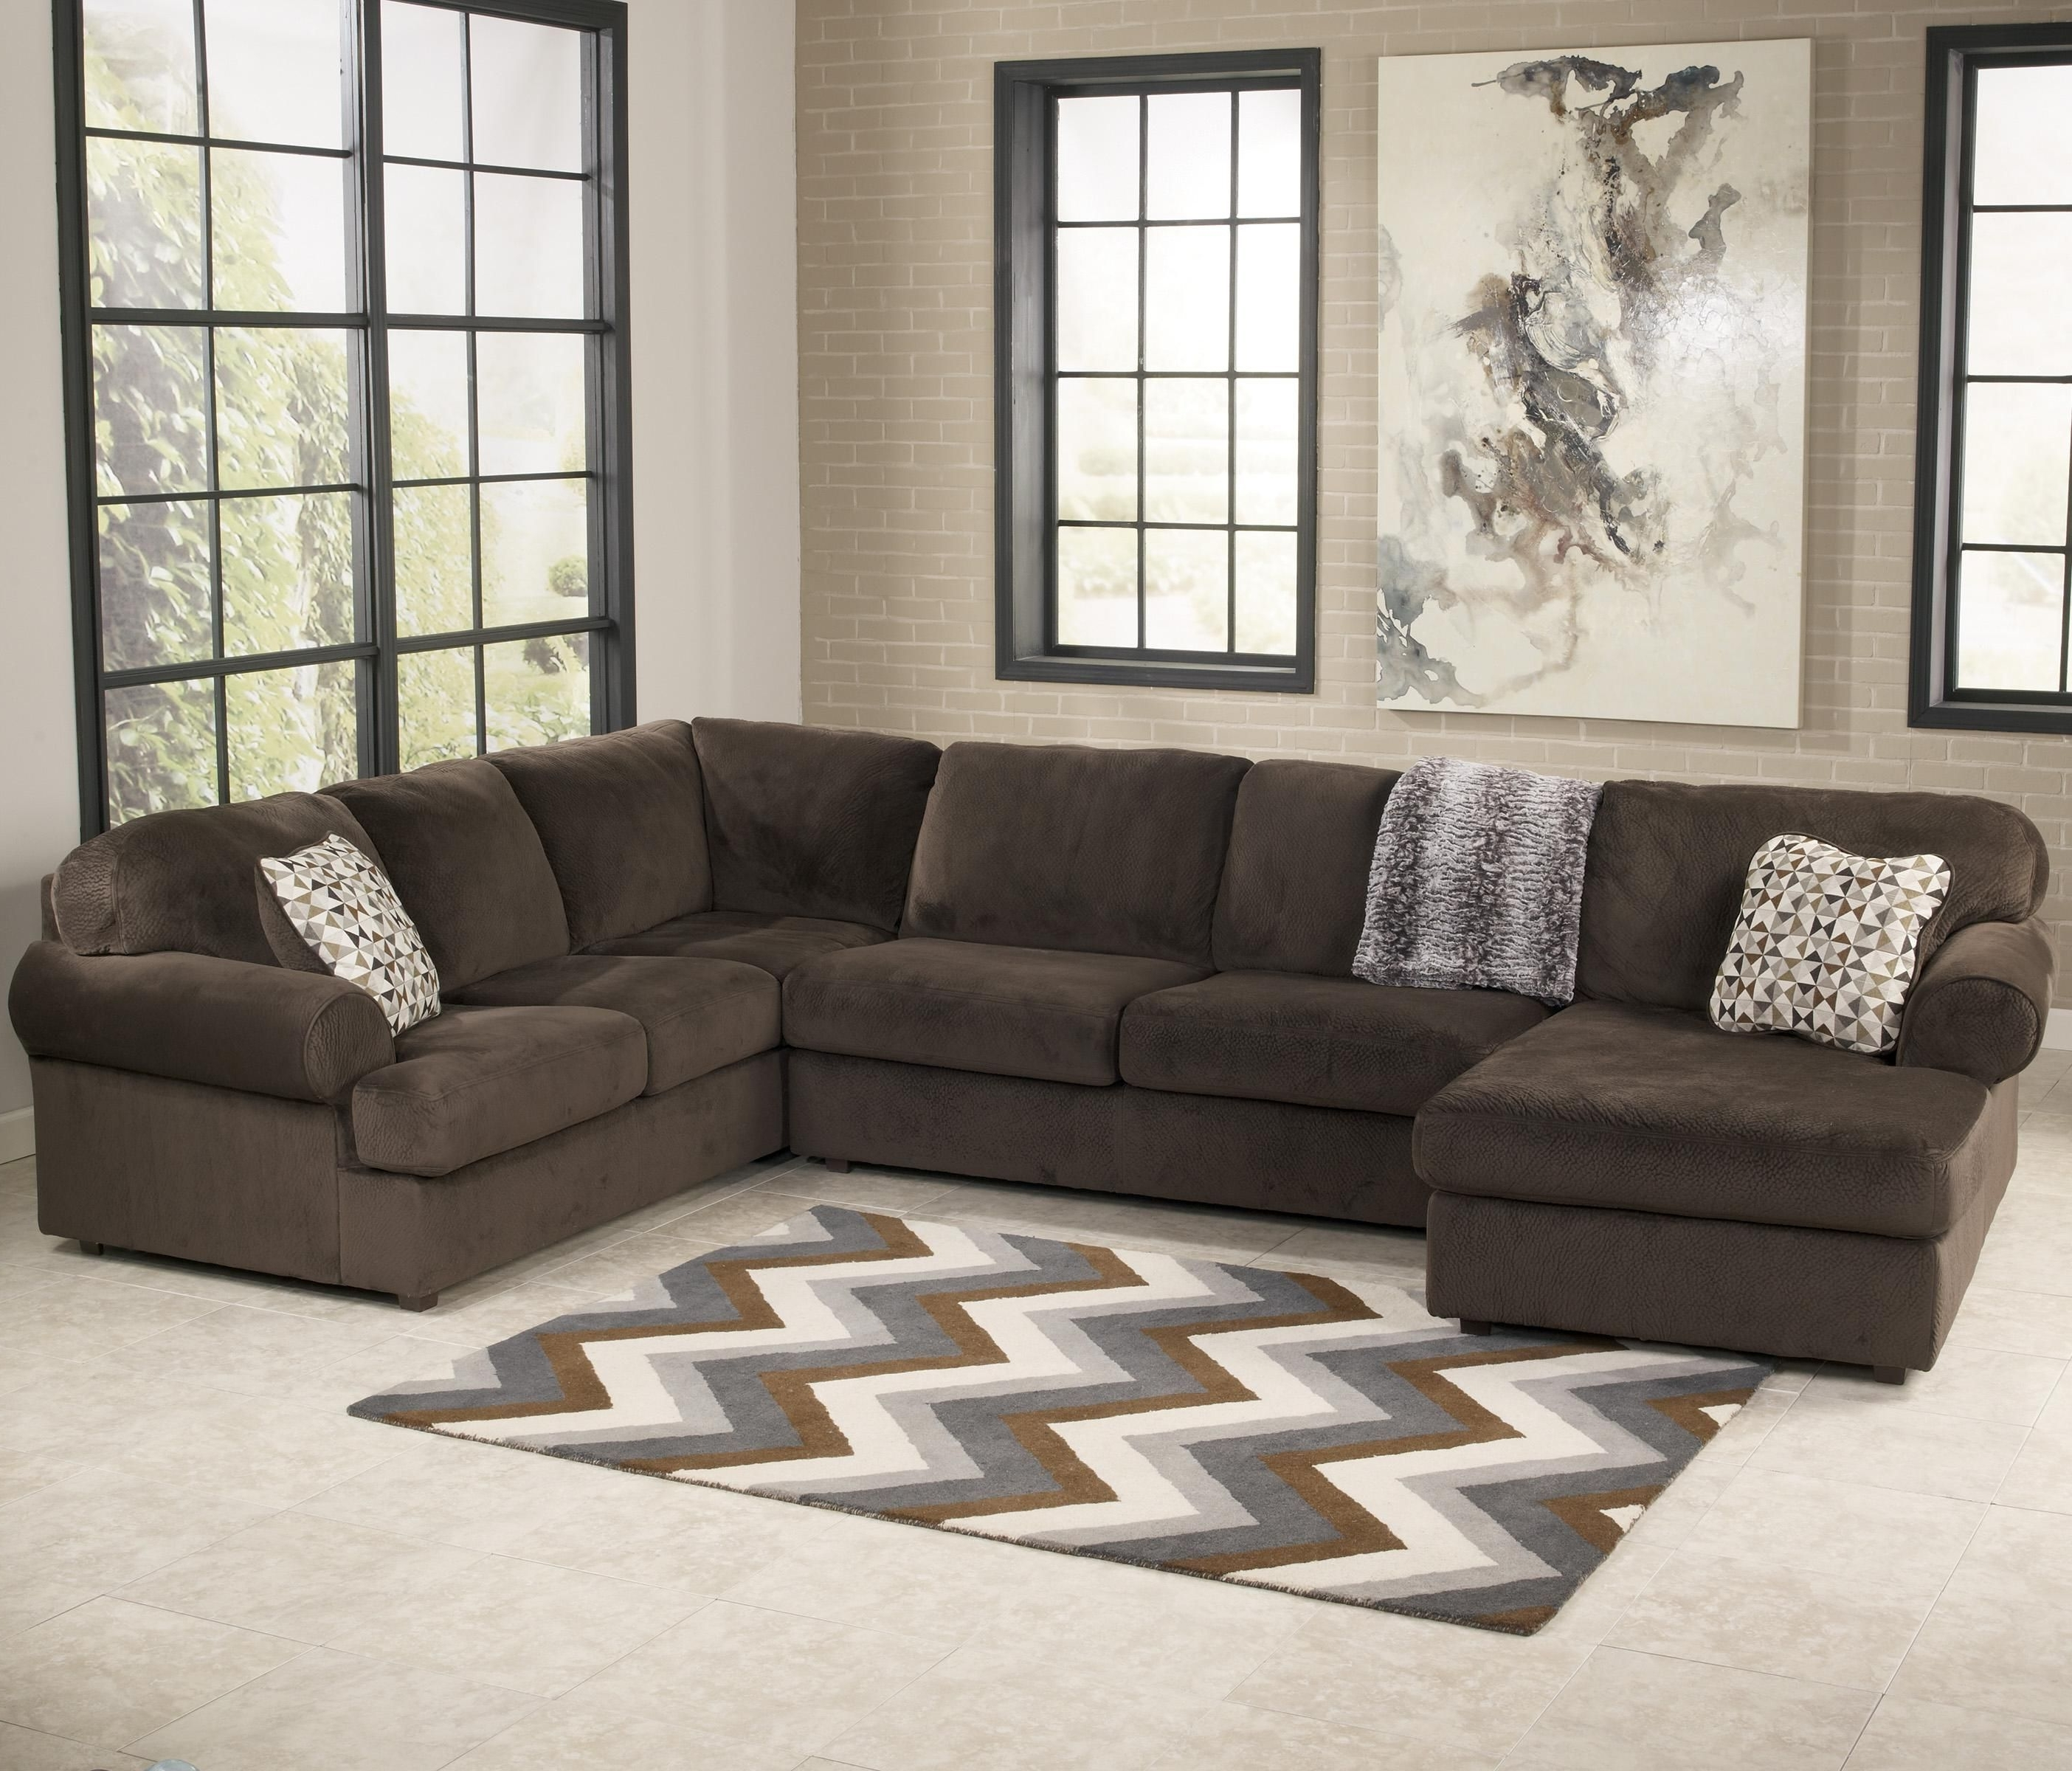 Most Up To Date Murfreesboro Tn Sectional Sofas With Regard To Jessa Place – Chocolate Casual Sectional Sofa With Left Chaise (View 13 of 20)